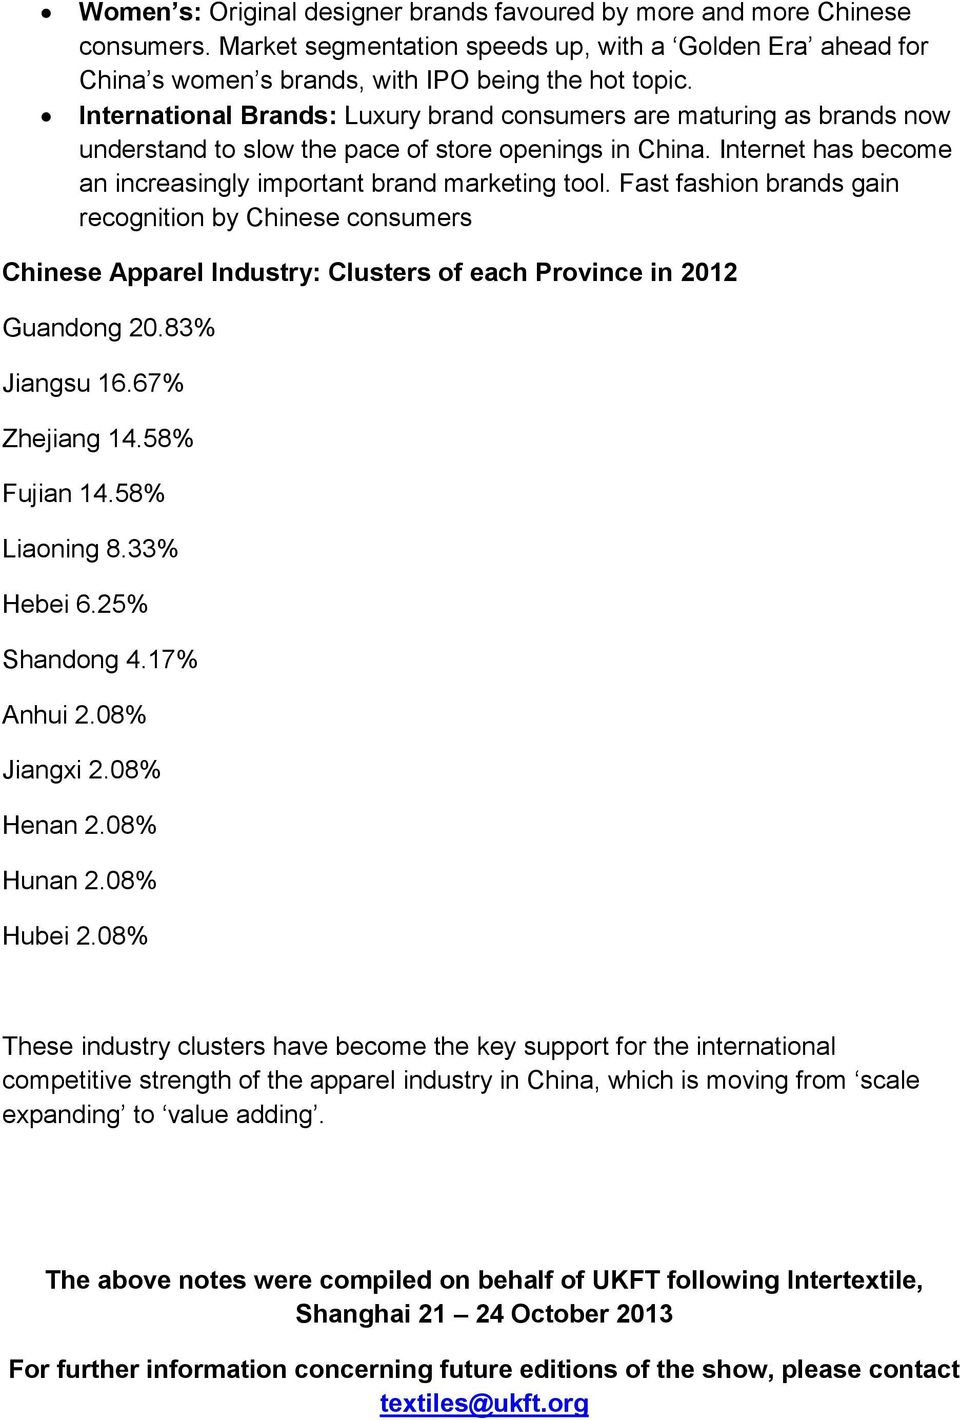 Fast fashion brands gain recognition by Chinese consumers Chinese Apparel Industry: Clusters of each Province in 2012 Guandong 20.83% Jiangsu 16.67% Zhejiang 14.58% Fujian 14.58% Liaoning 8.